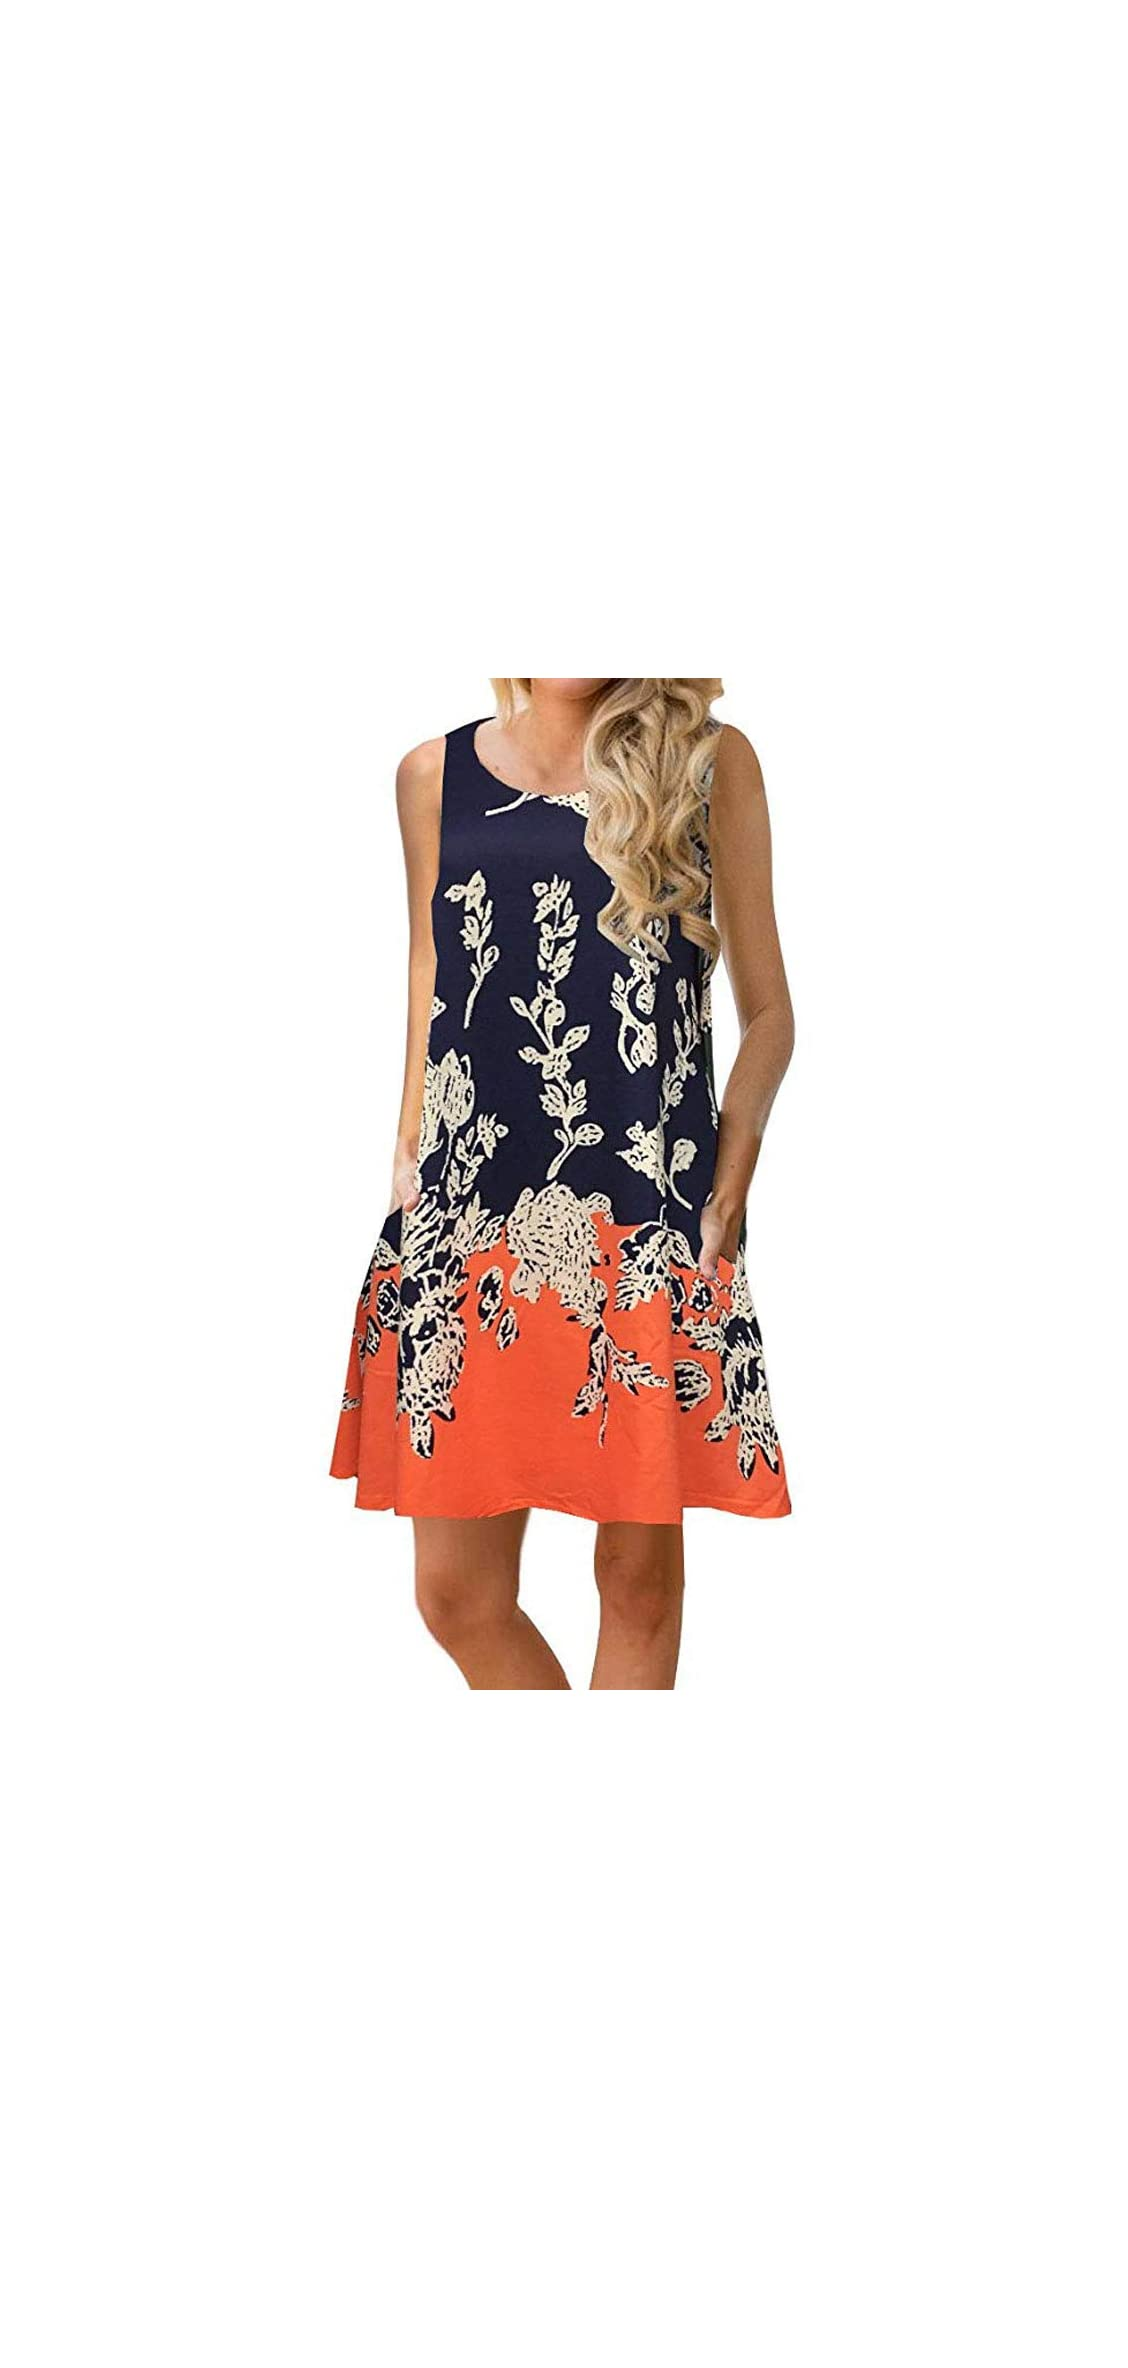 Womens Summer Floral Print Sleeveless Sundress/short